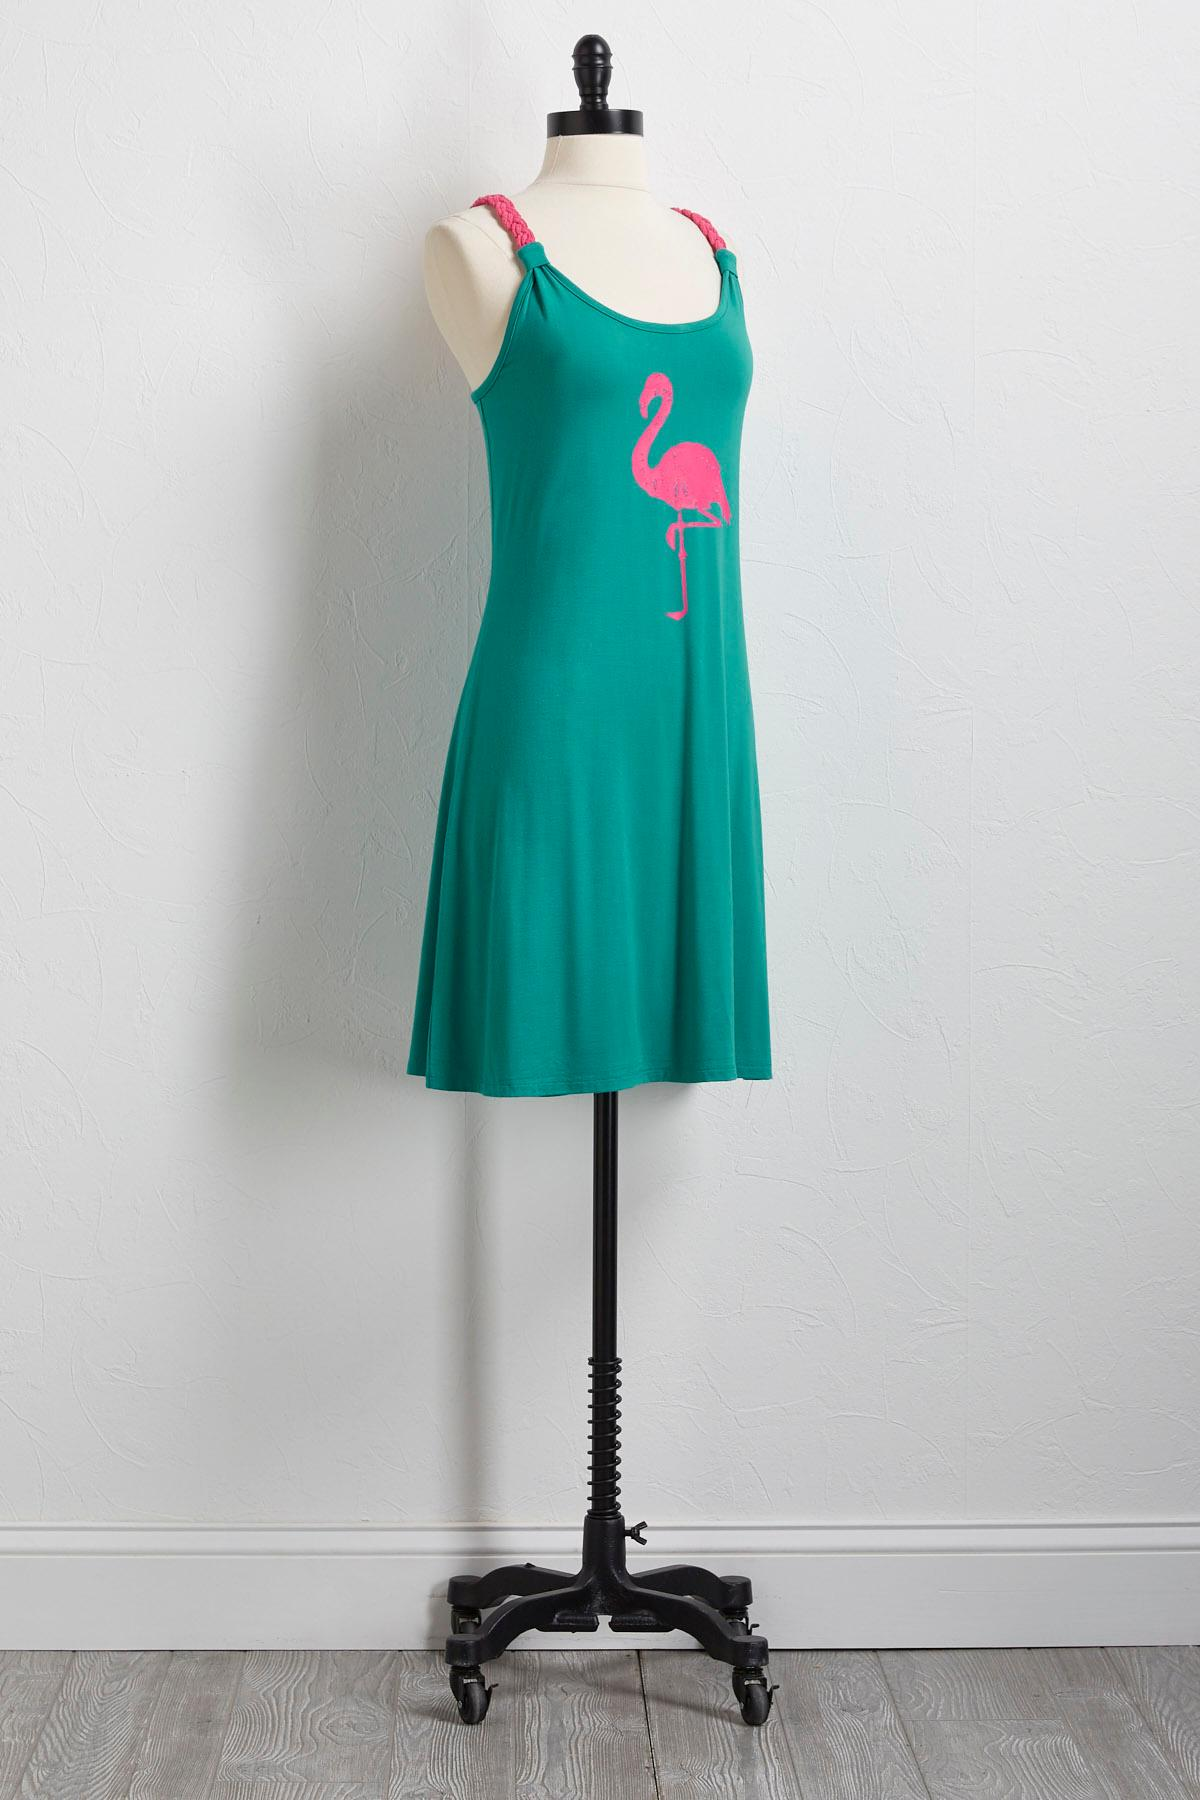 Flamingo Braided Strap Dress